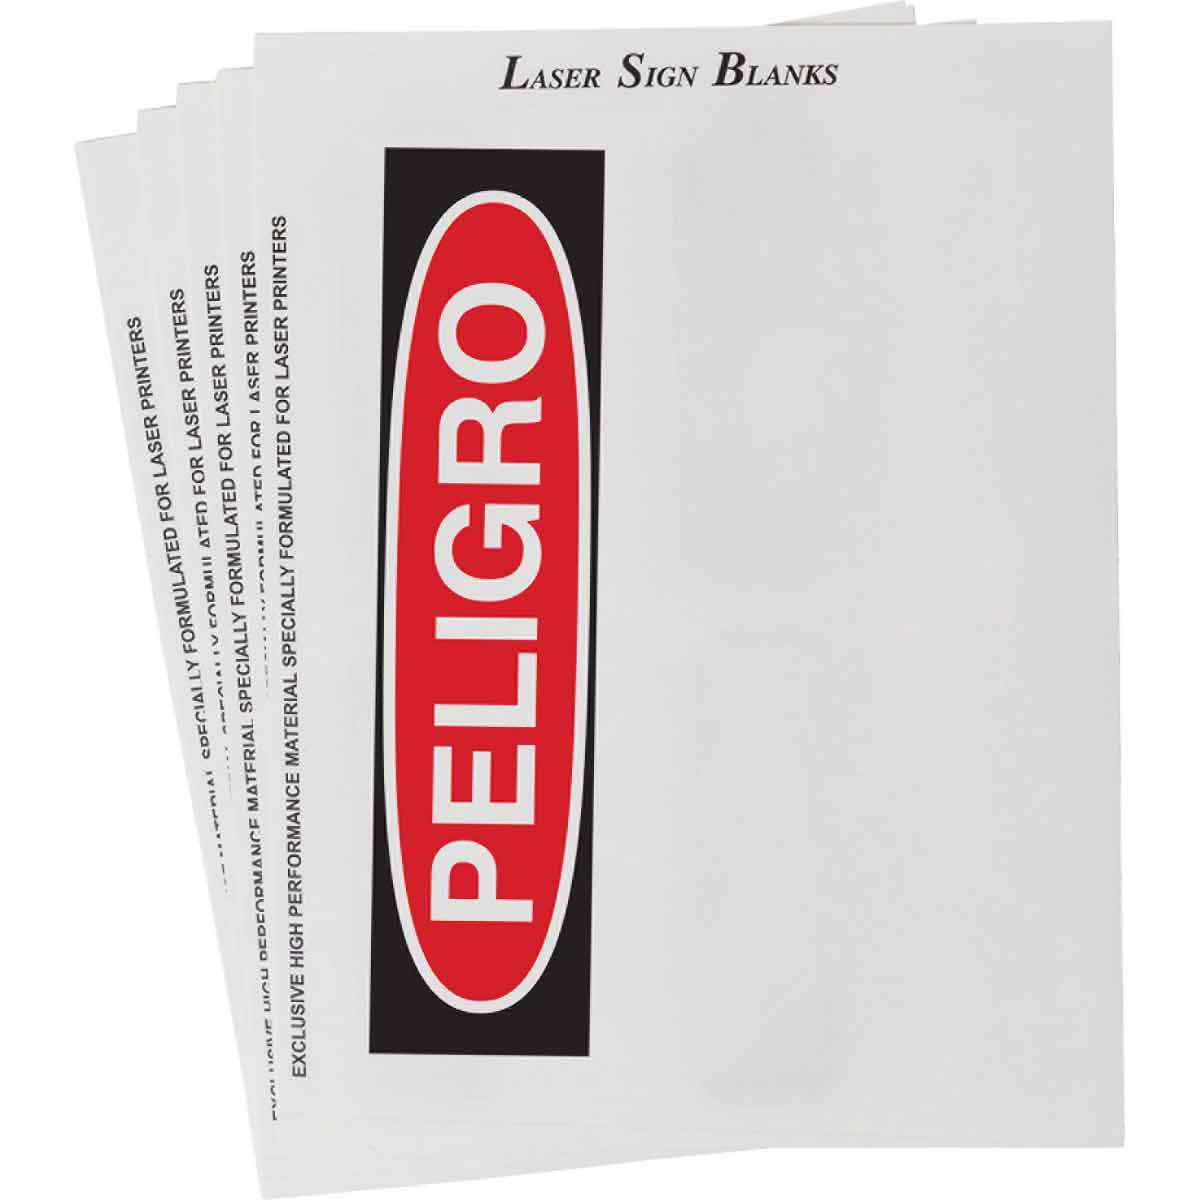 photograph regarding Printable Printers referred to as Laser Printable Polyester PELIGRO Indicator and Label Blanks